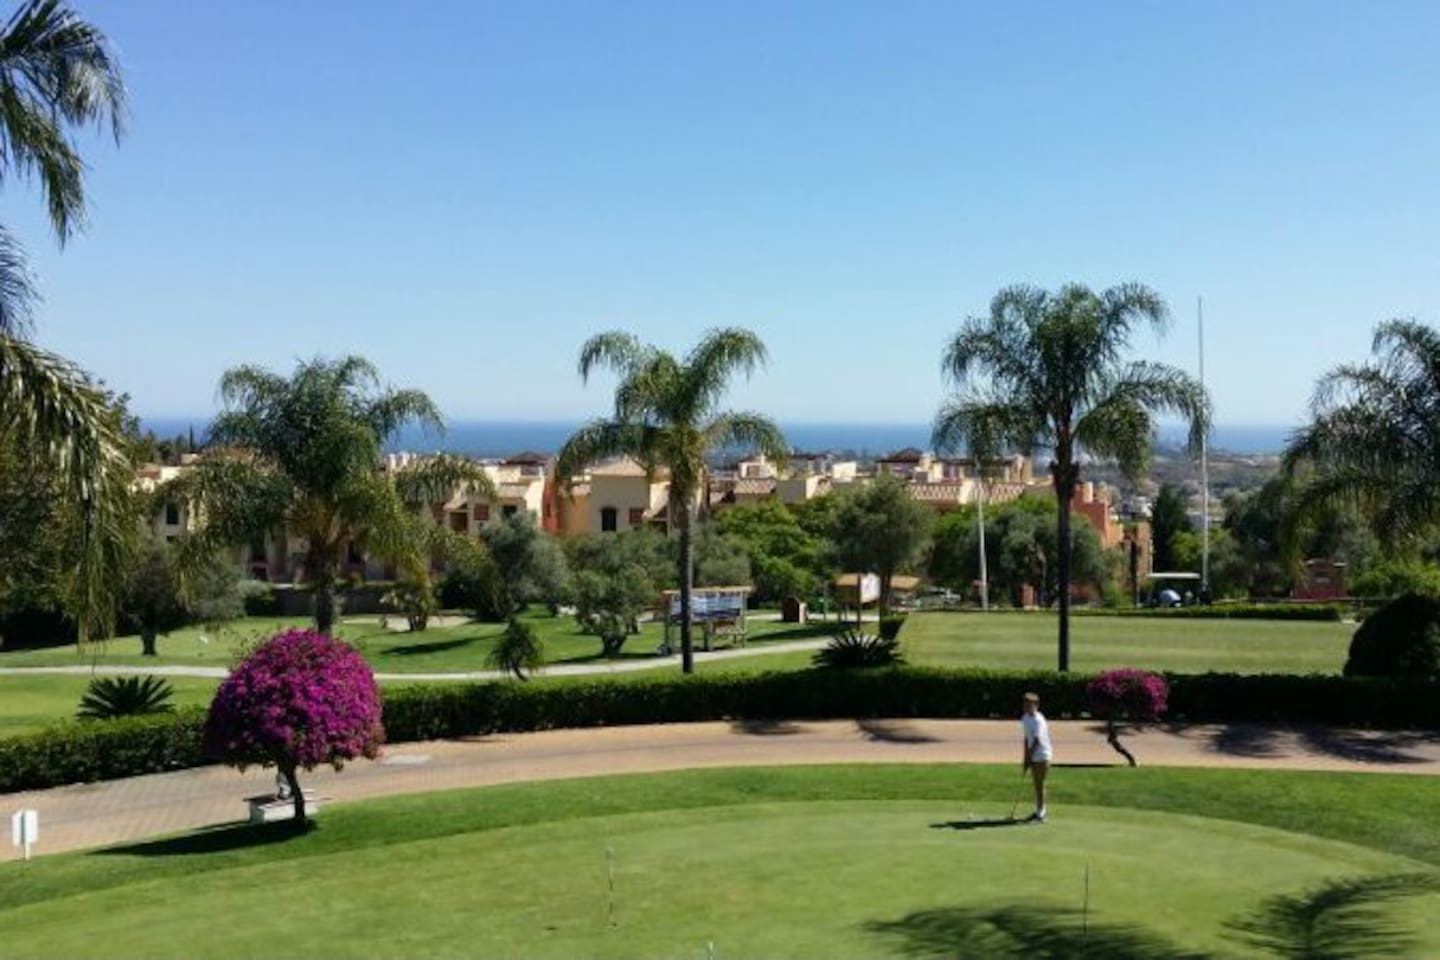 Views from the Club House to La Finca complex